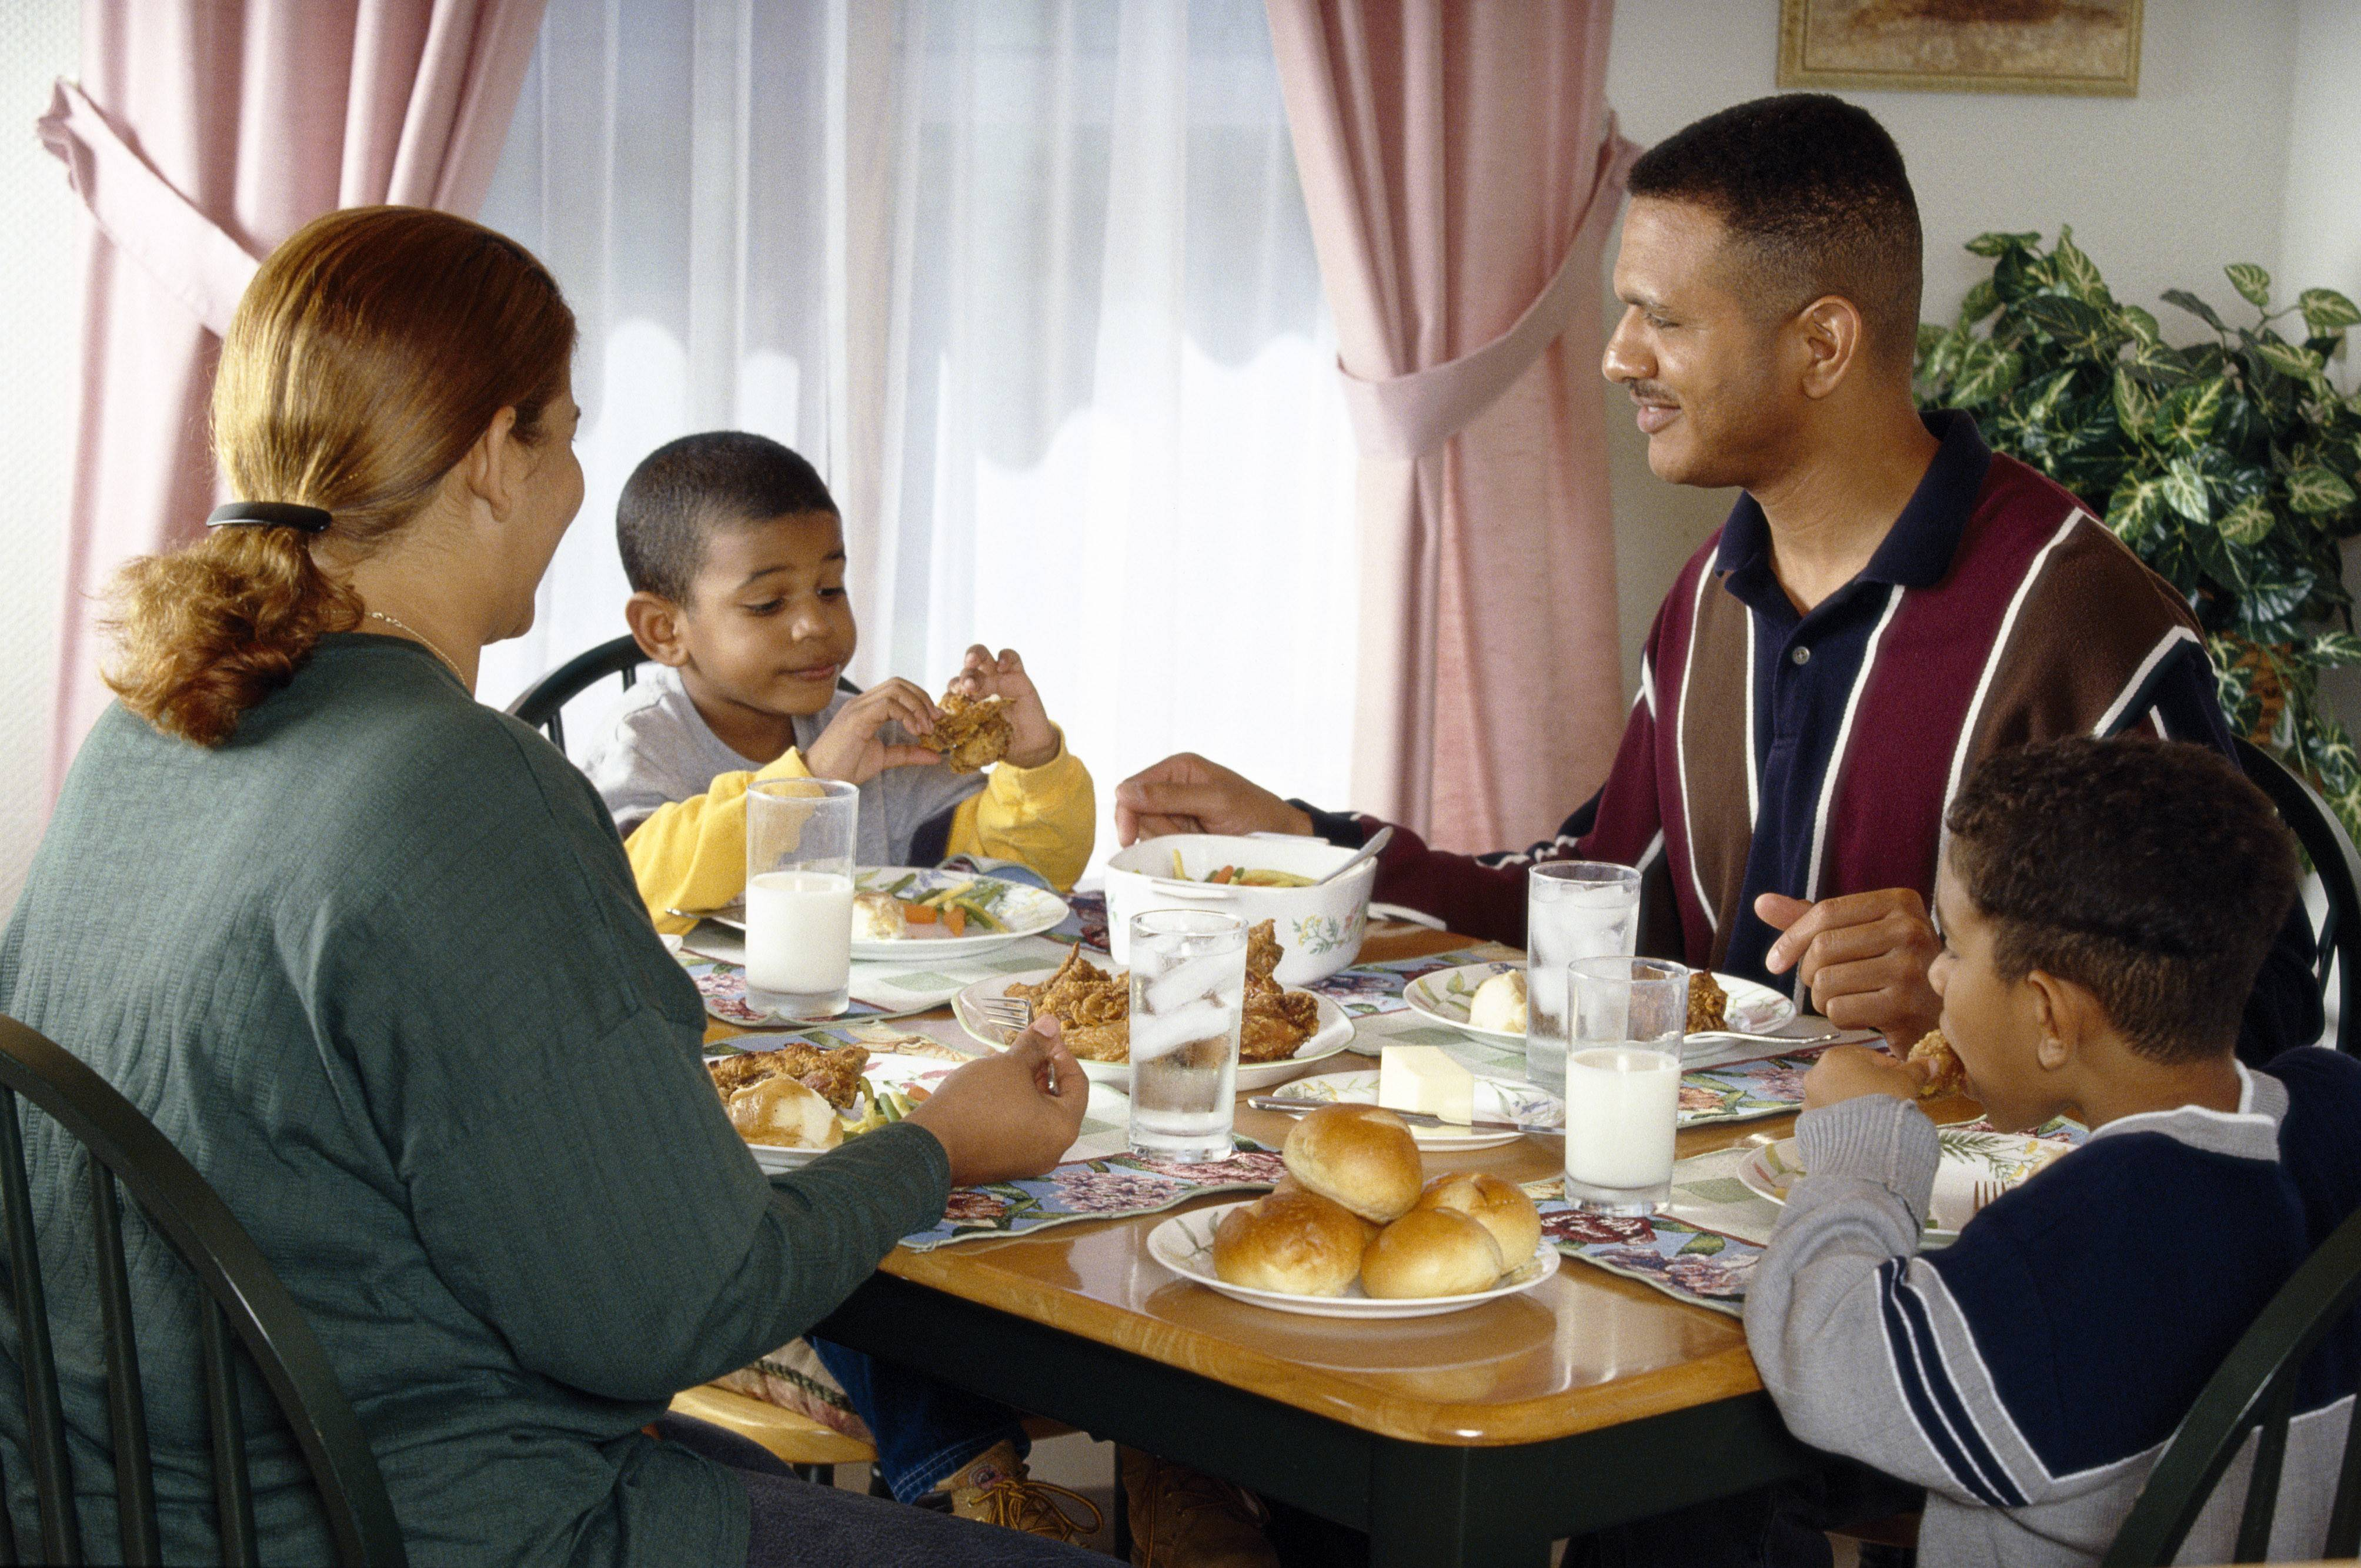 For more mindful eating, children should eat with caring adults in a happy setting and without distraction, not in front of the TV or in the car.